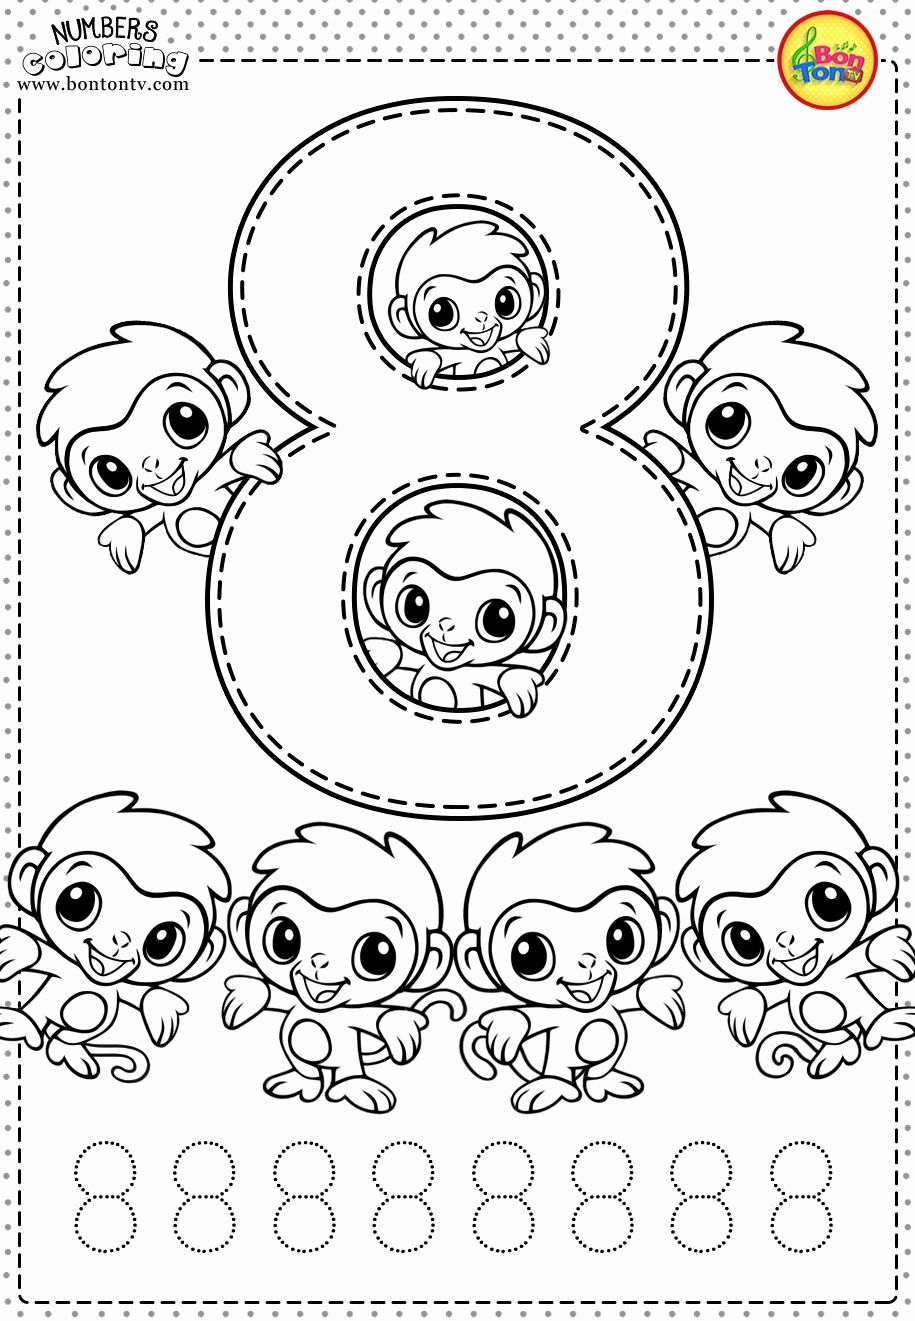 Fun Coloring Pages For Kindergarten New Number 8 Preschool